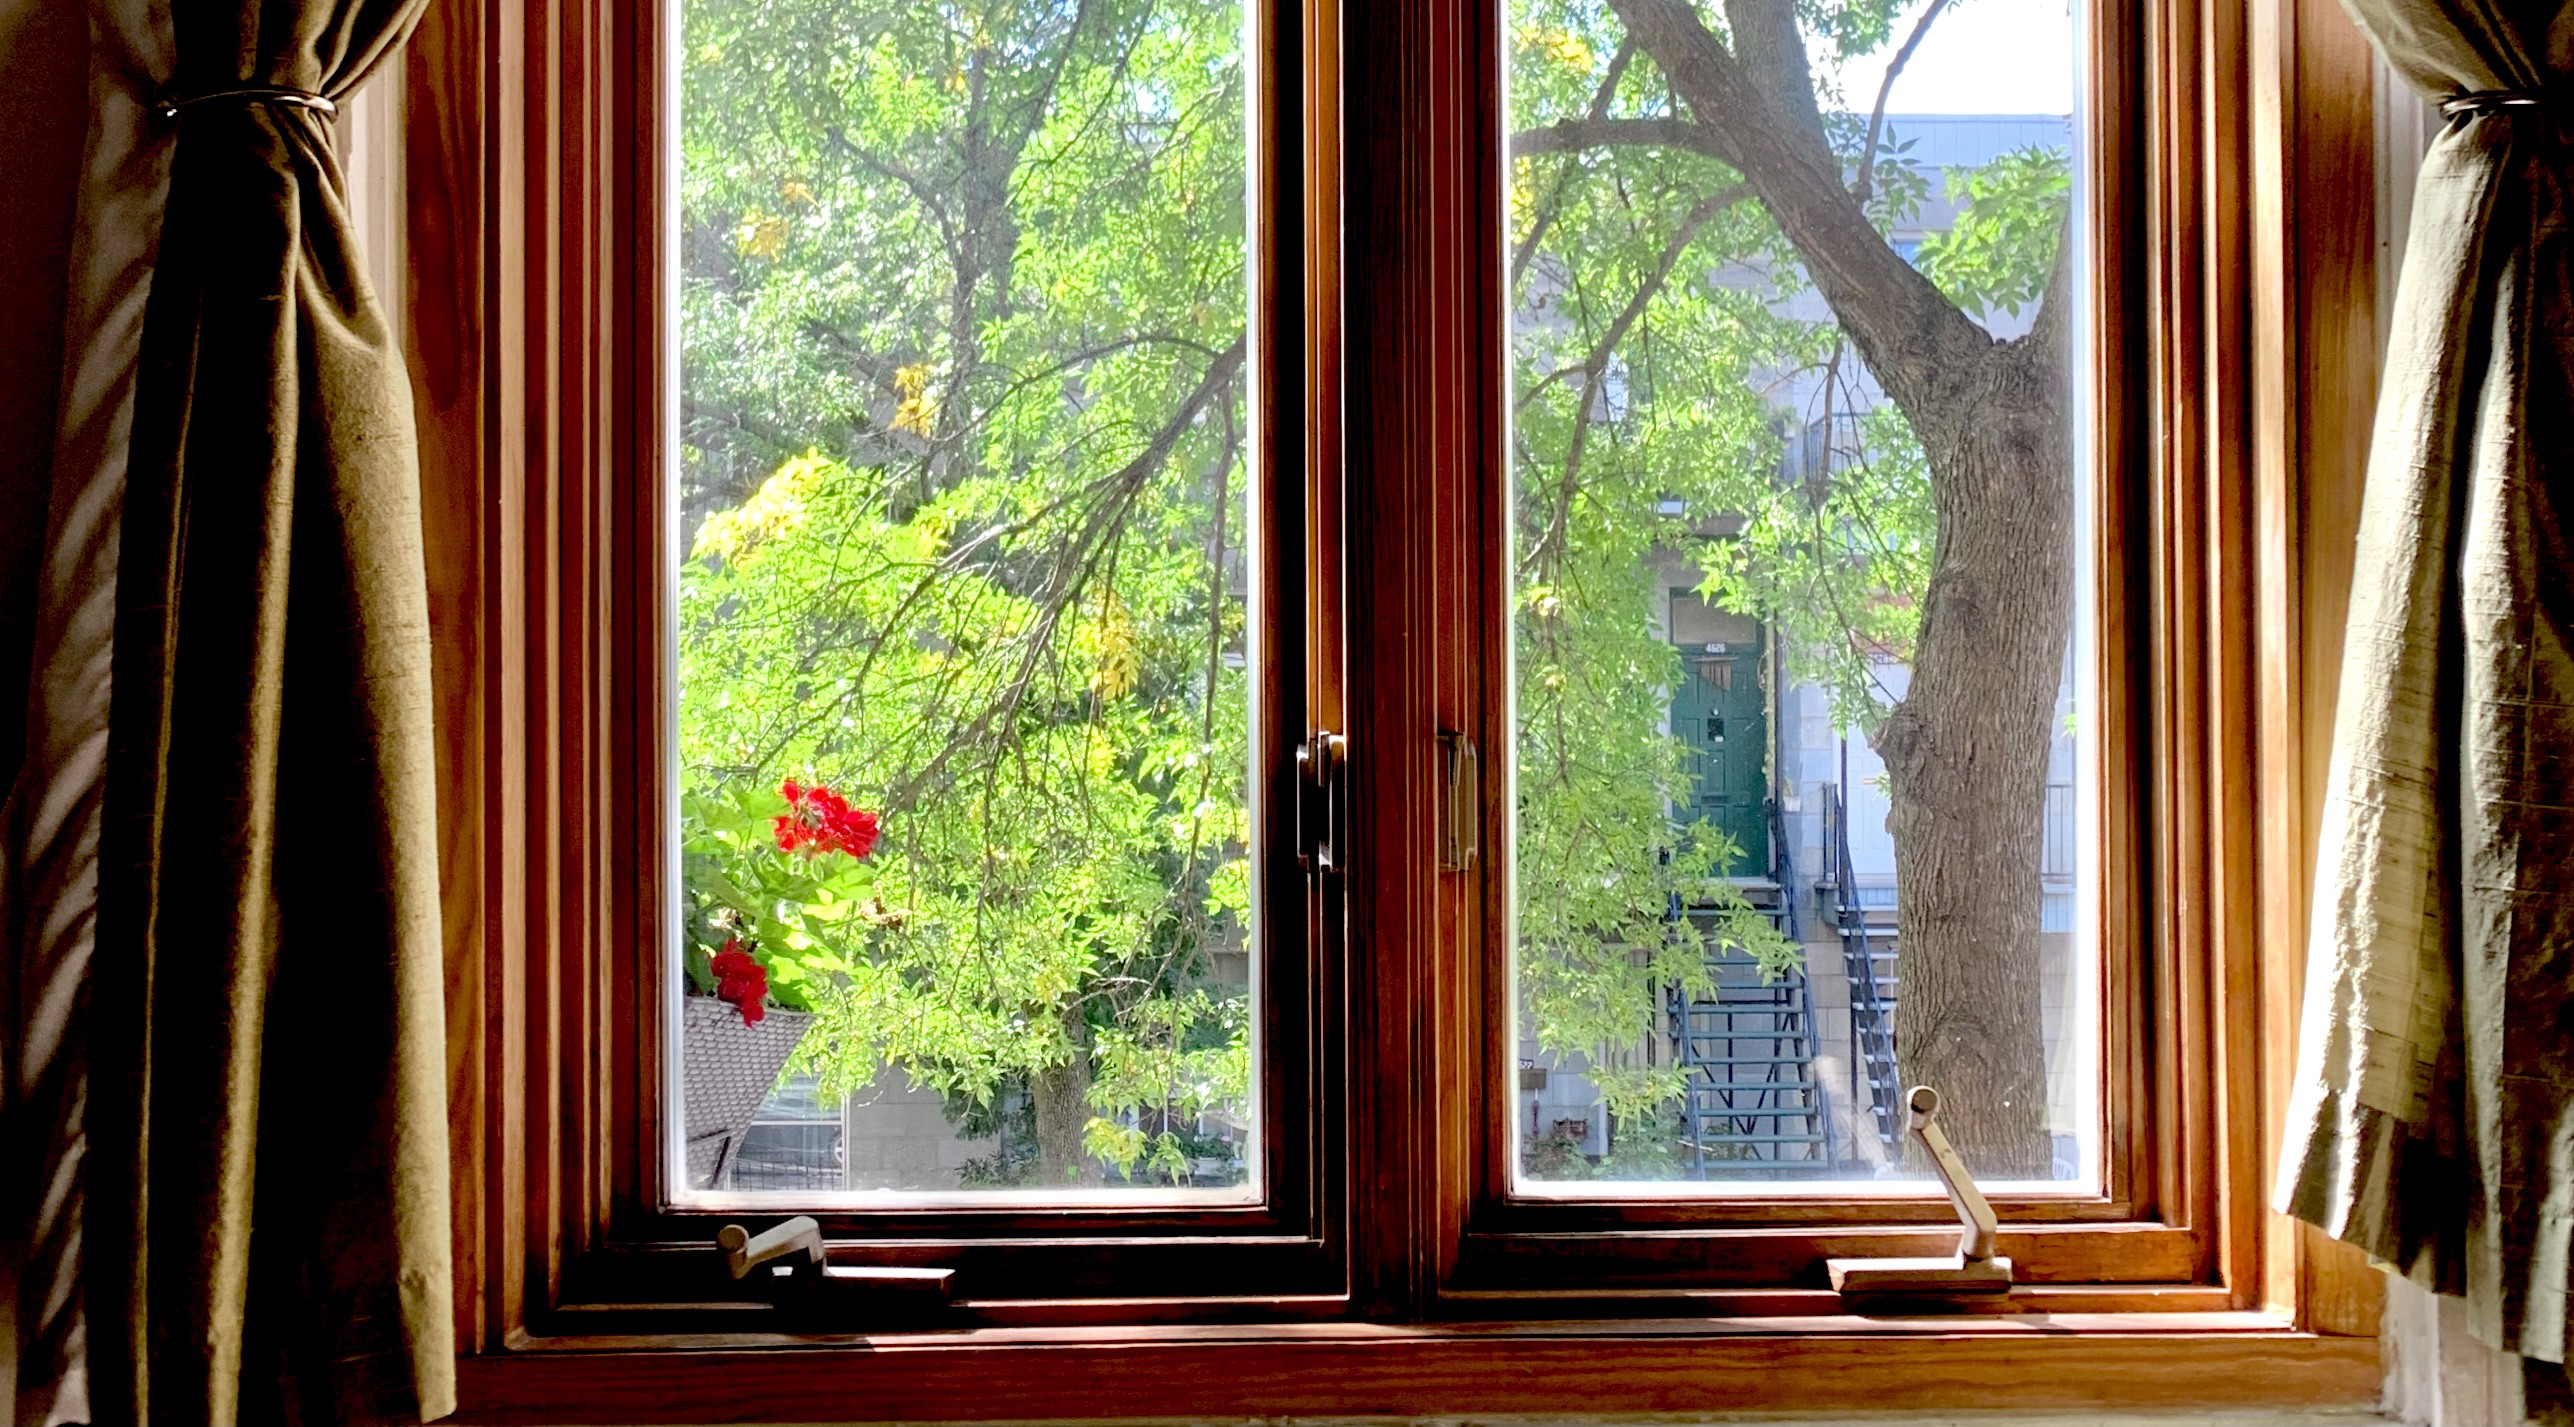 looking through the window to the trees outside